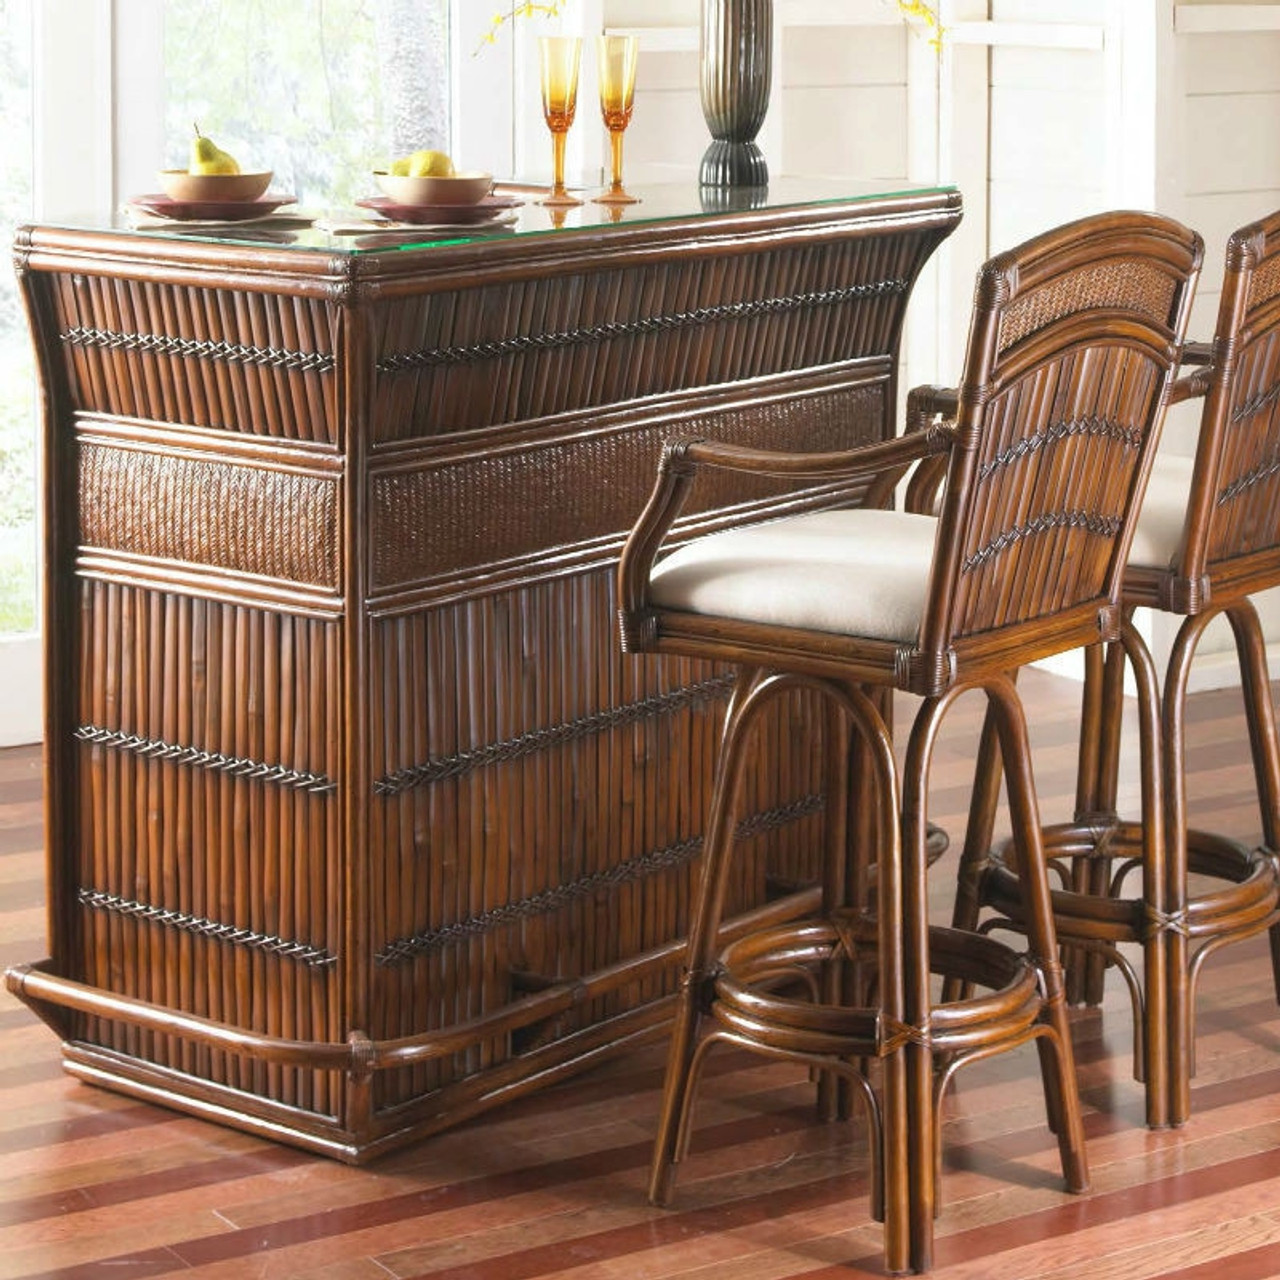 Dining Room Bars, Pub Tables and Sets